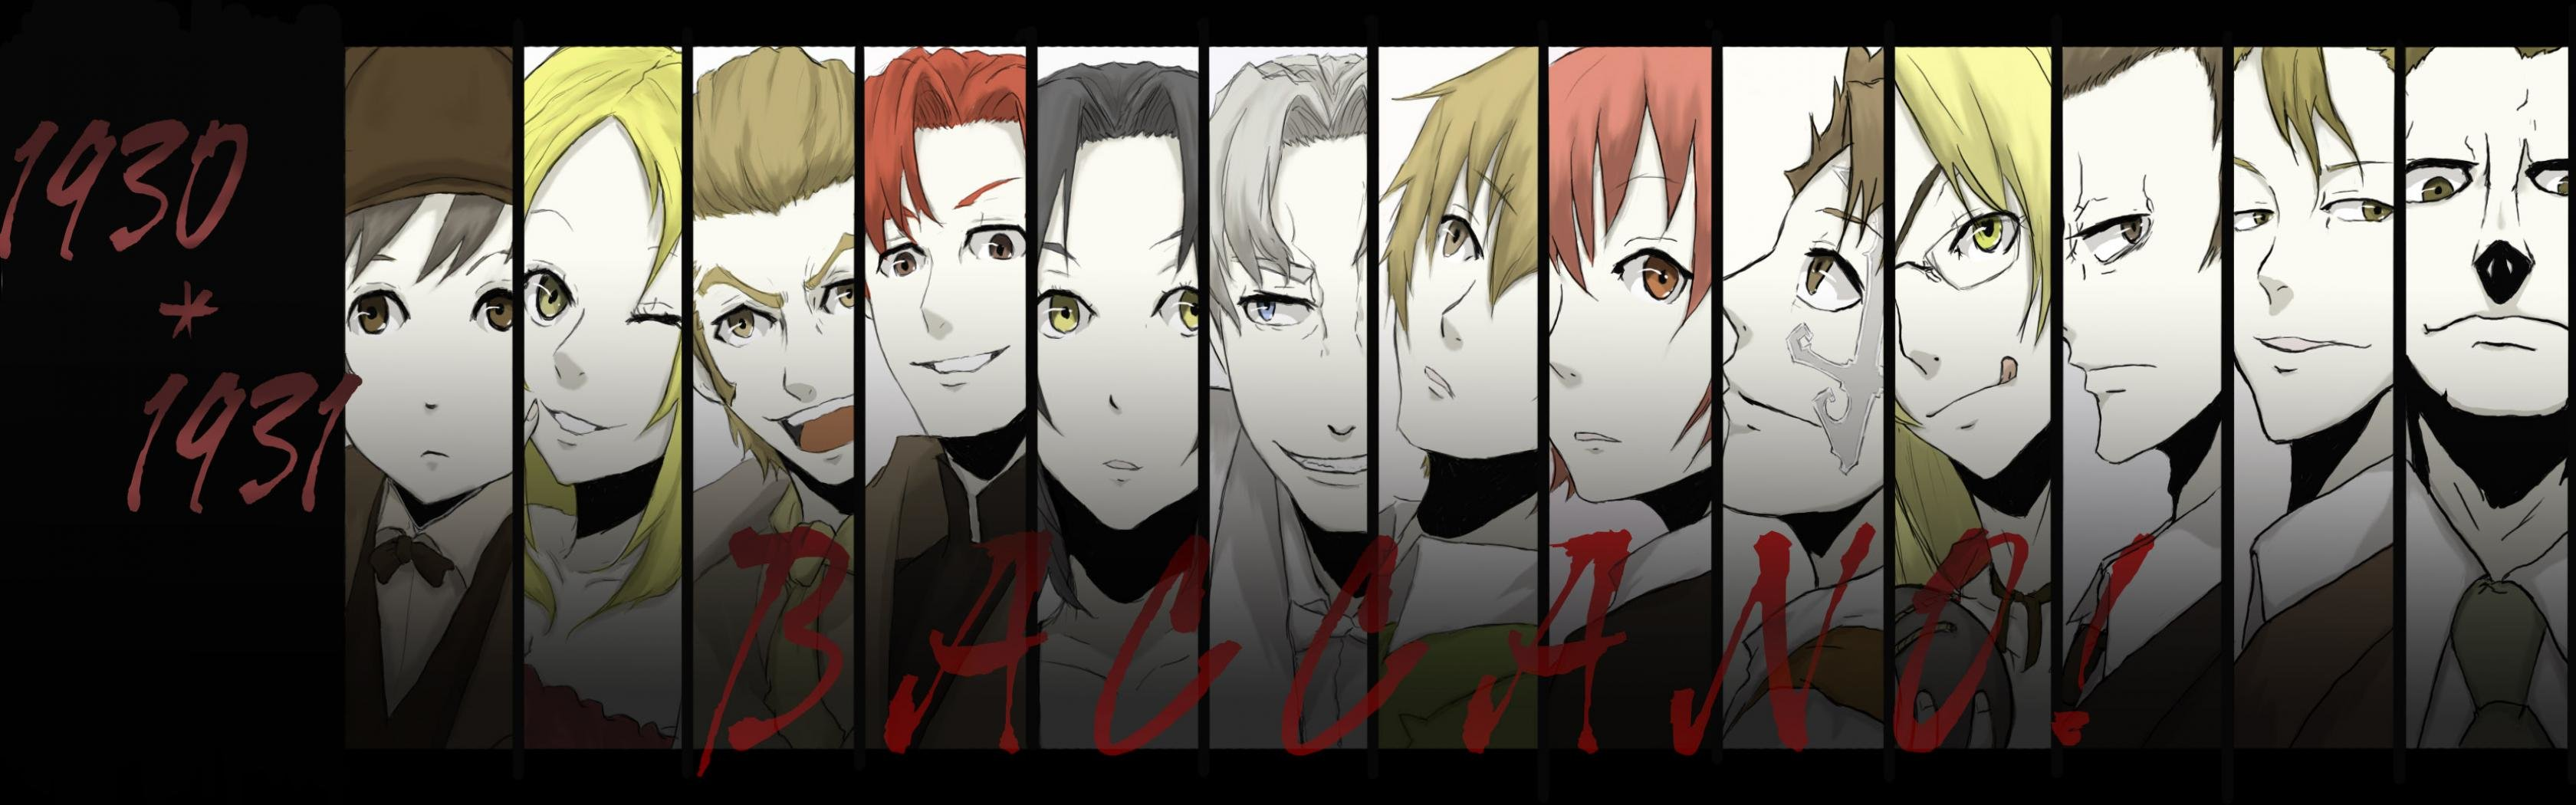 Free download Baccano! wallpaper ID:324379 dual monitor 1680x1050 for desktop